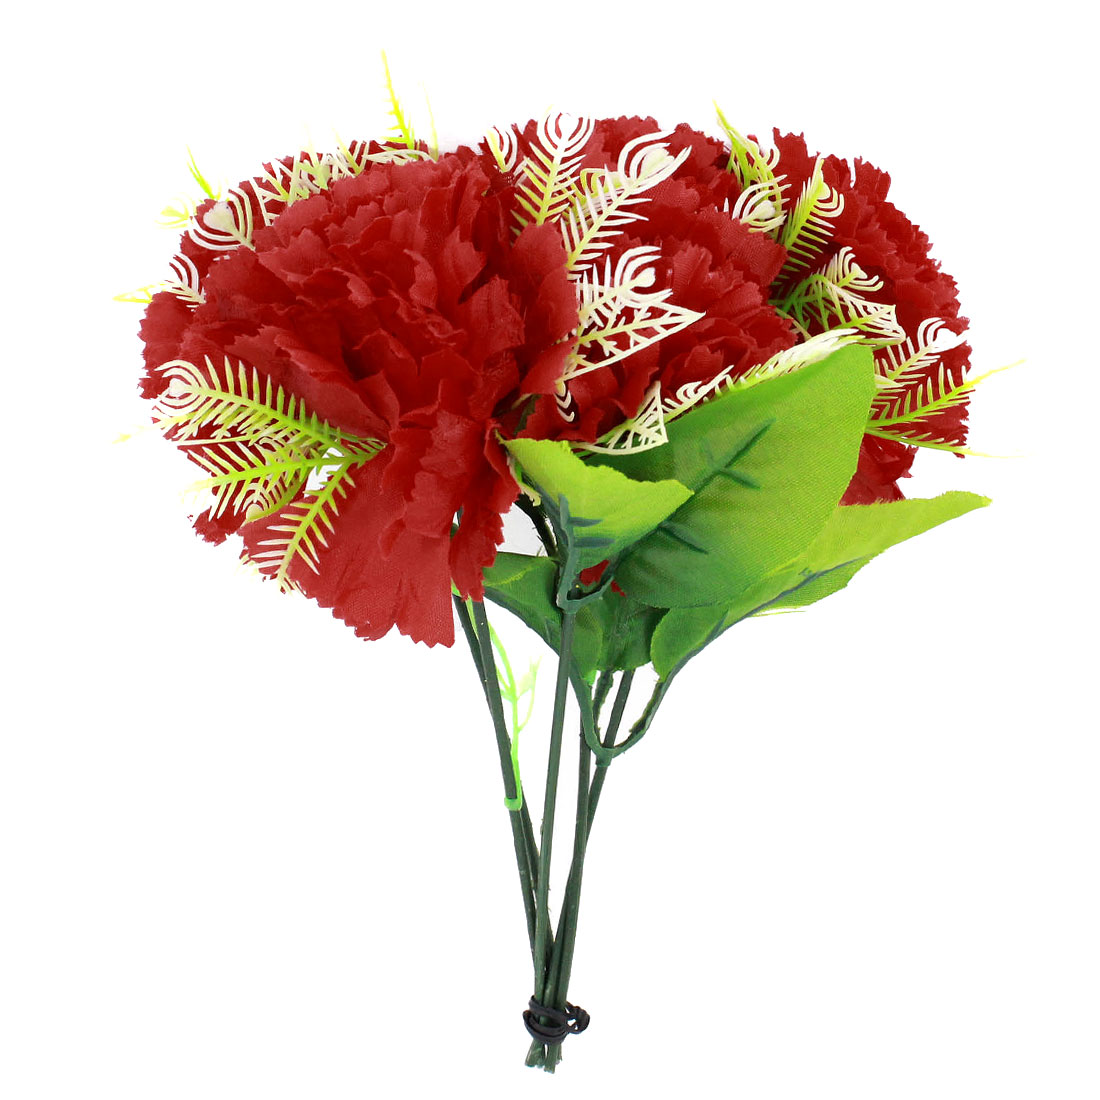 Household Bridal Emulational Plastic Floral Bouquet Ornament Red